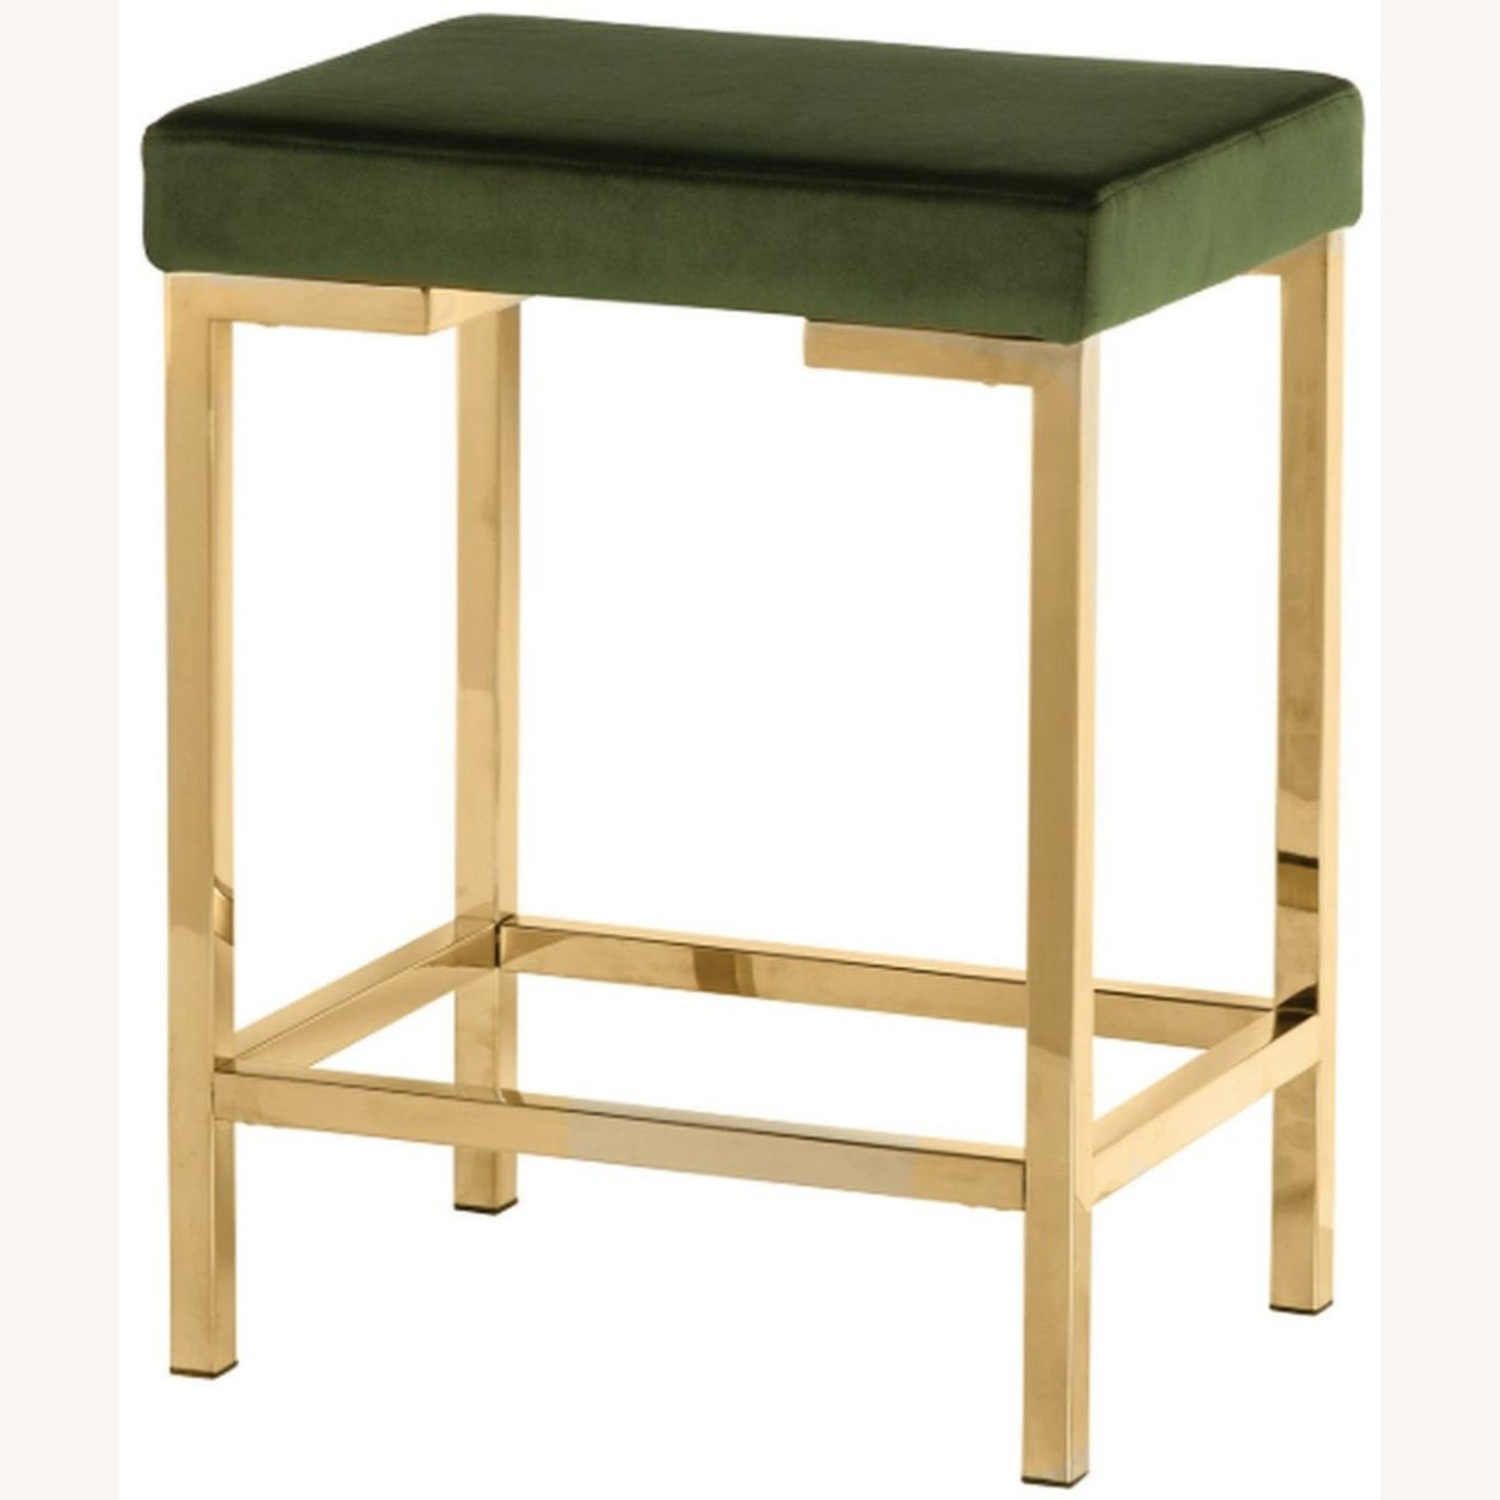 Minimalist Counter Height Stool In Green Fabric - image-1